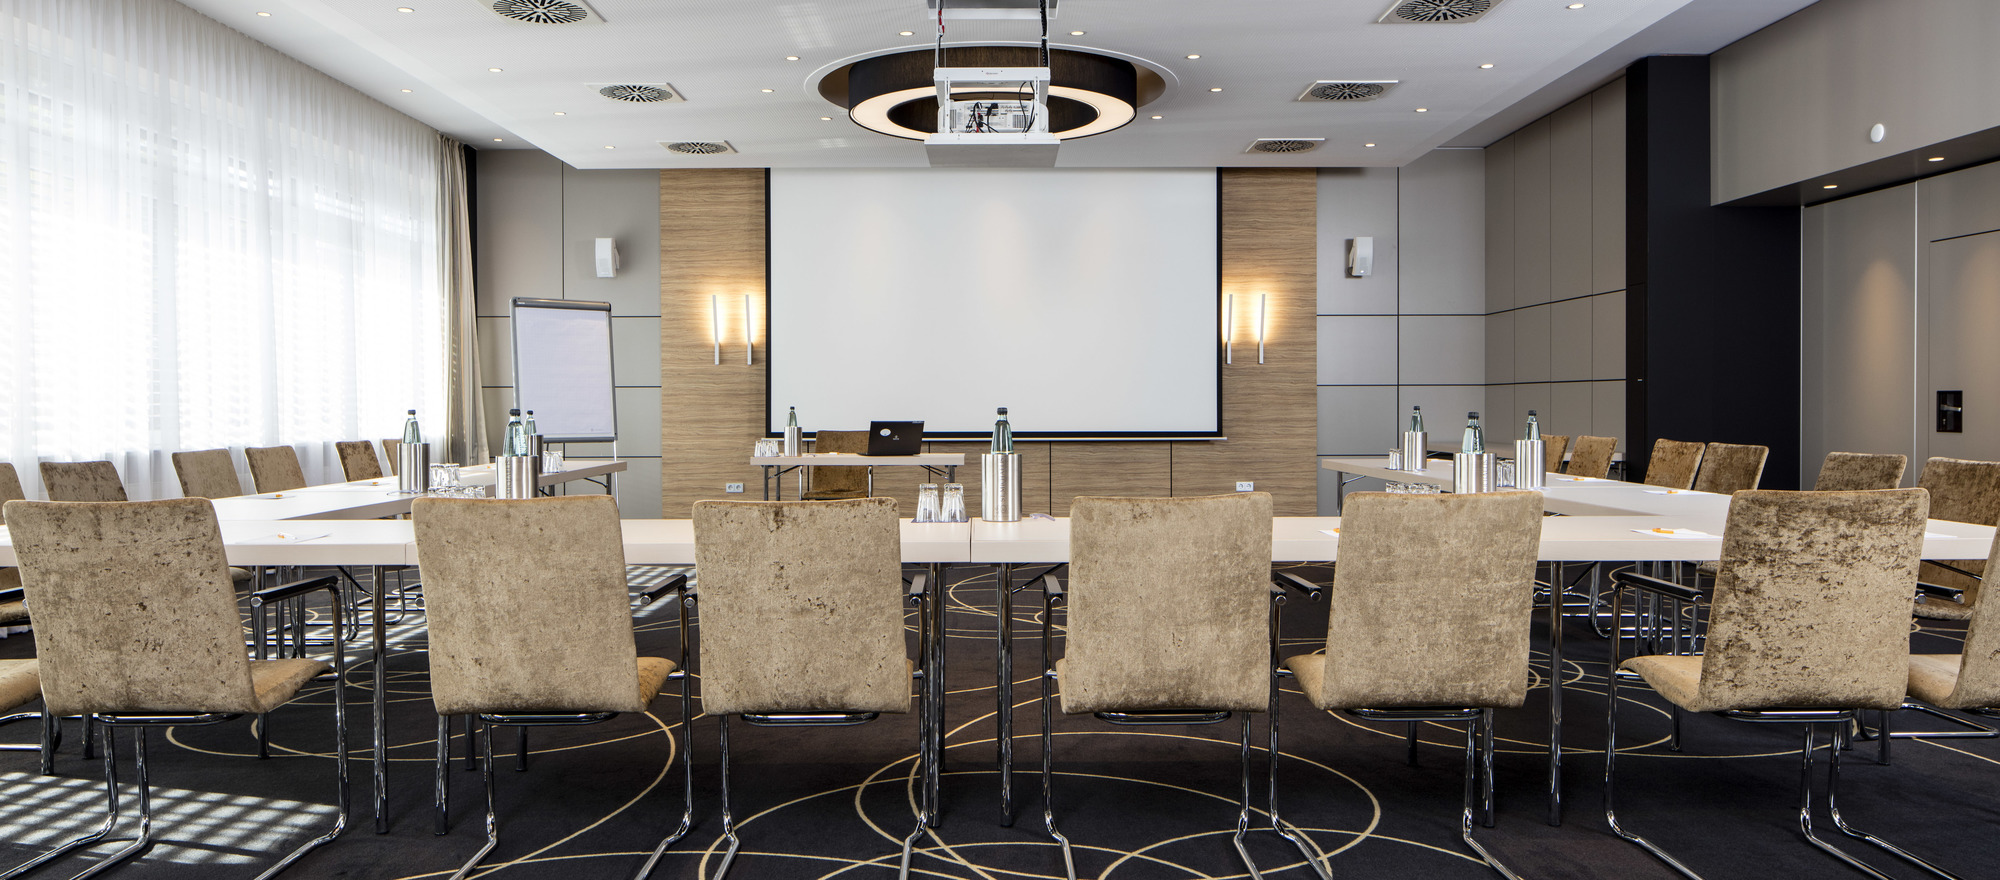 Modern equipped conference facilities and smooth service in the 4 star superior Hotel Ringhotel Waldschlösschen in Schleswig